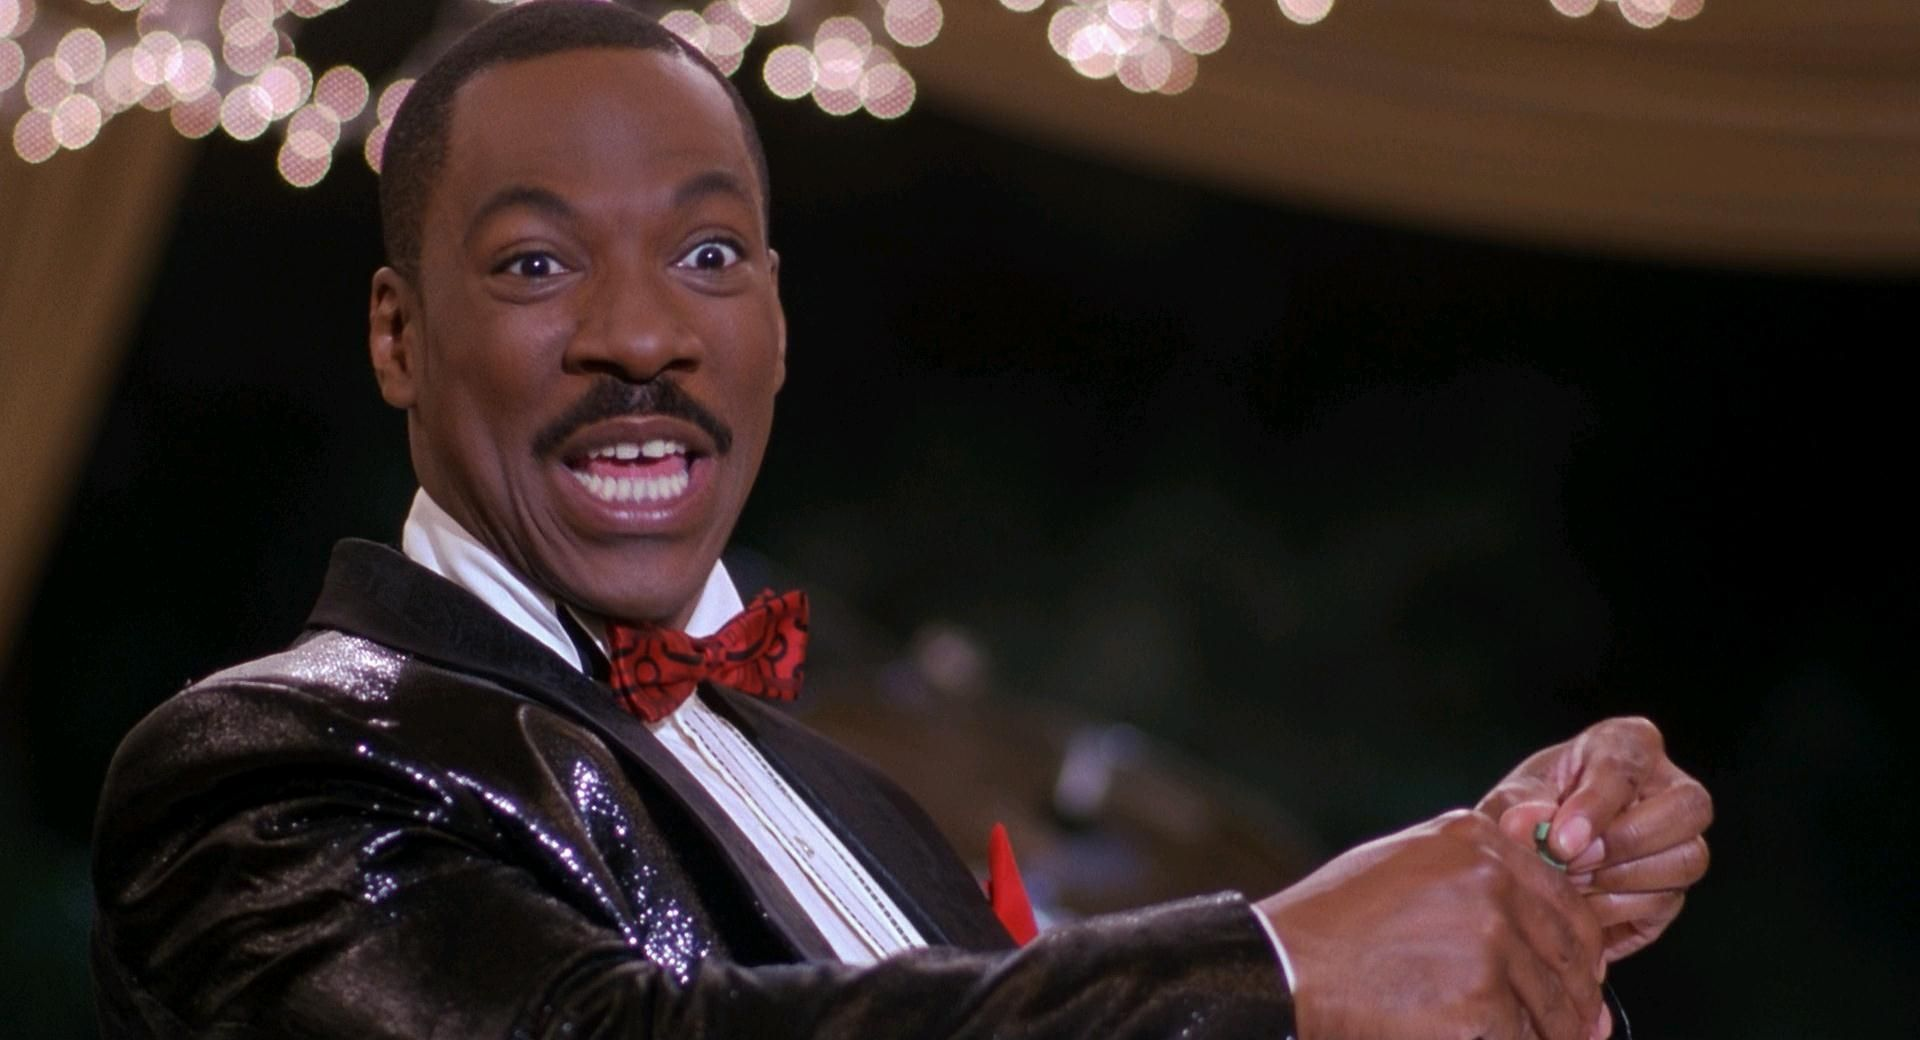 Eddie Murphy as Buddy Love in The Nutty Professor (1996)